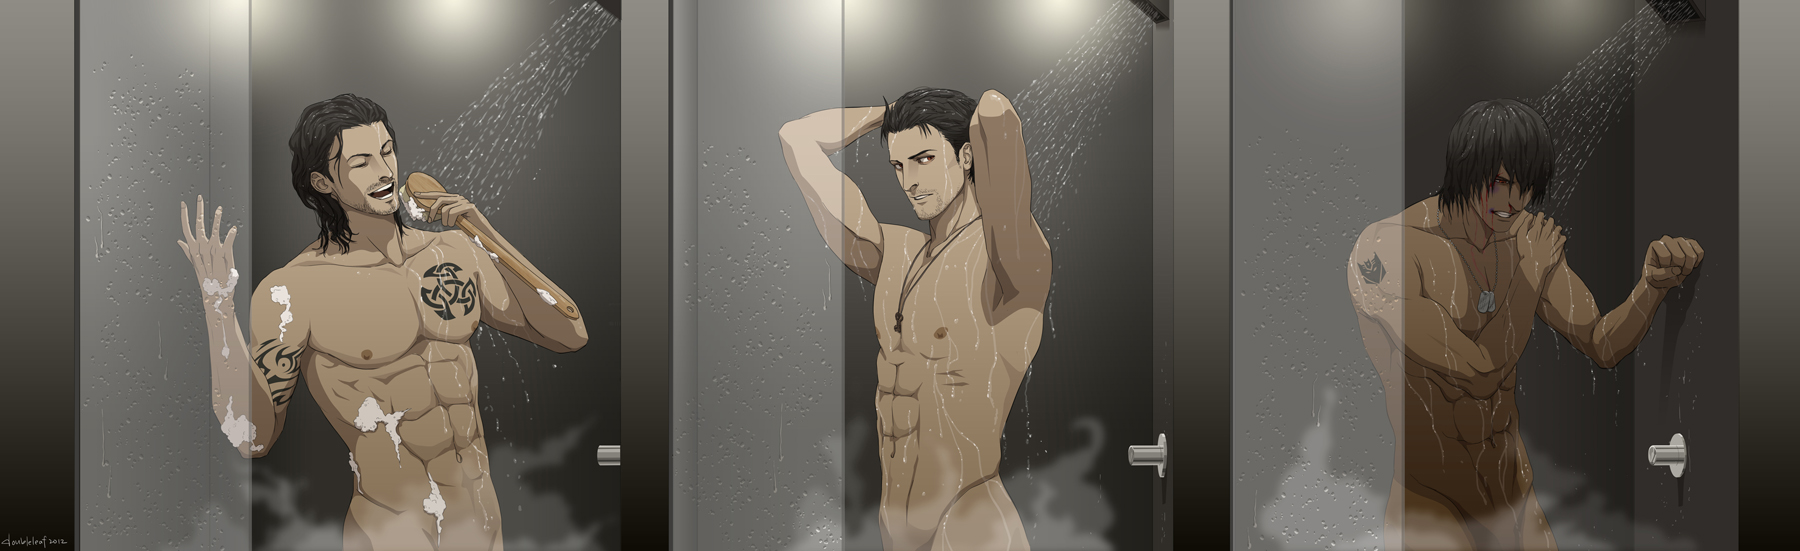 Commission: Seekers in Shower